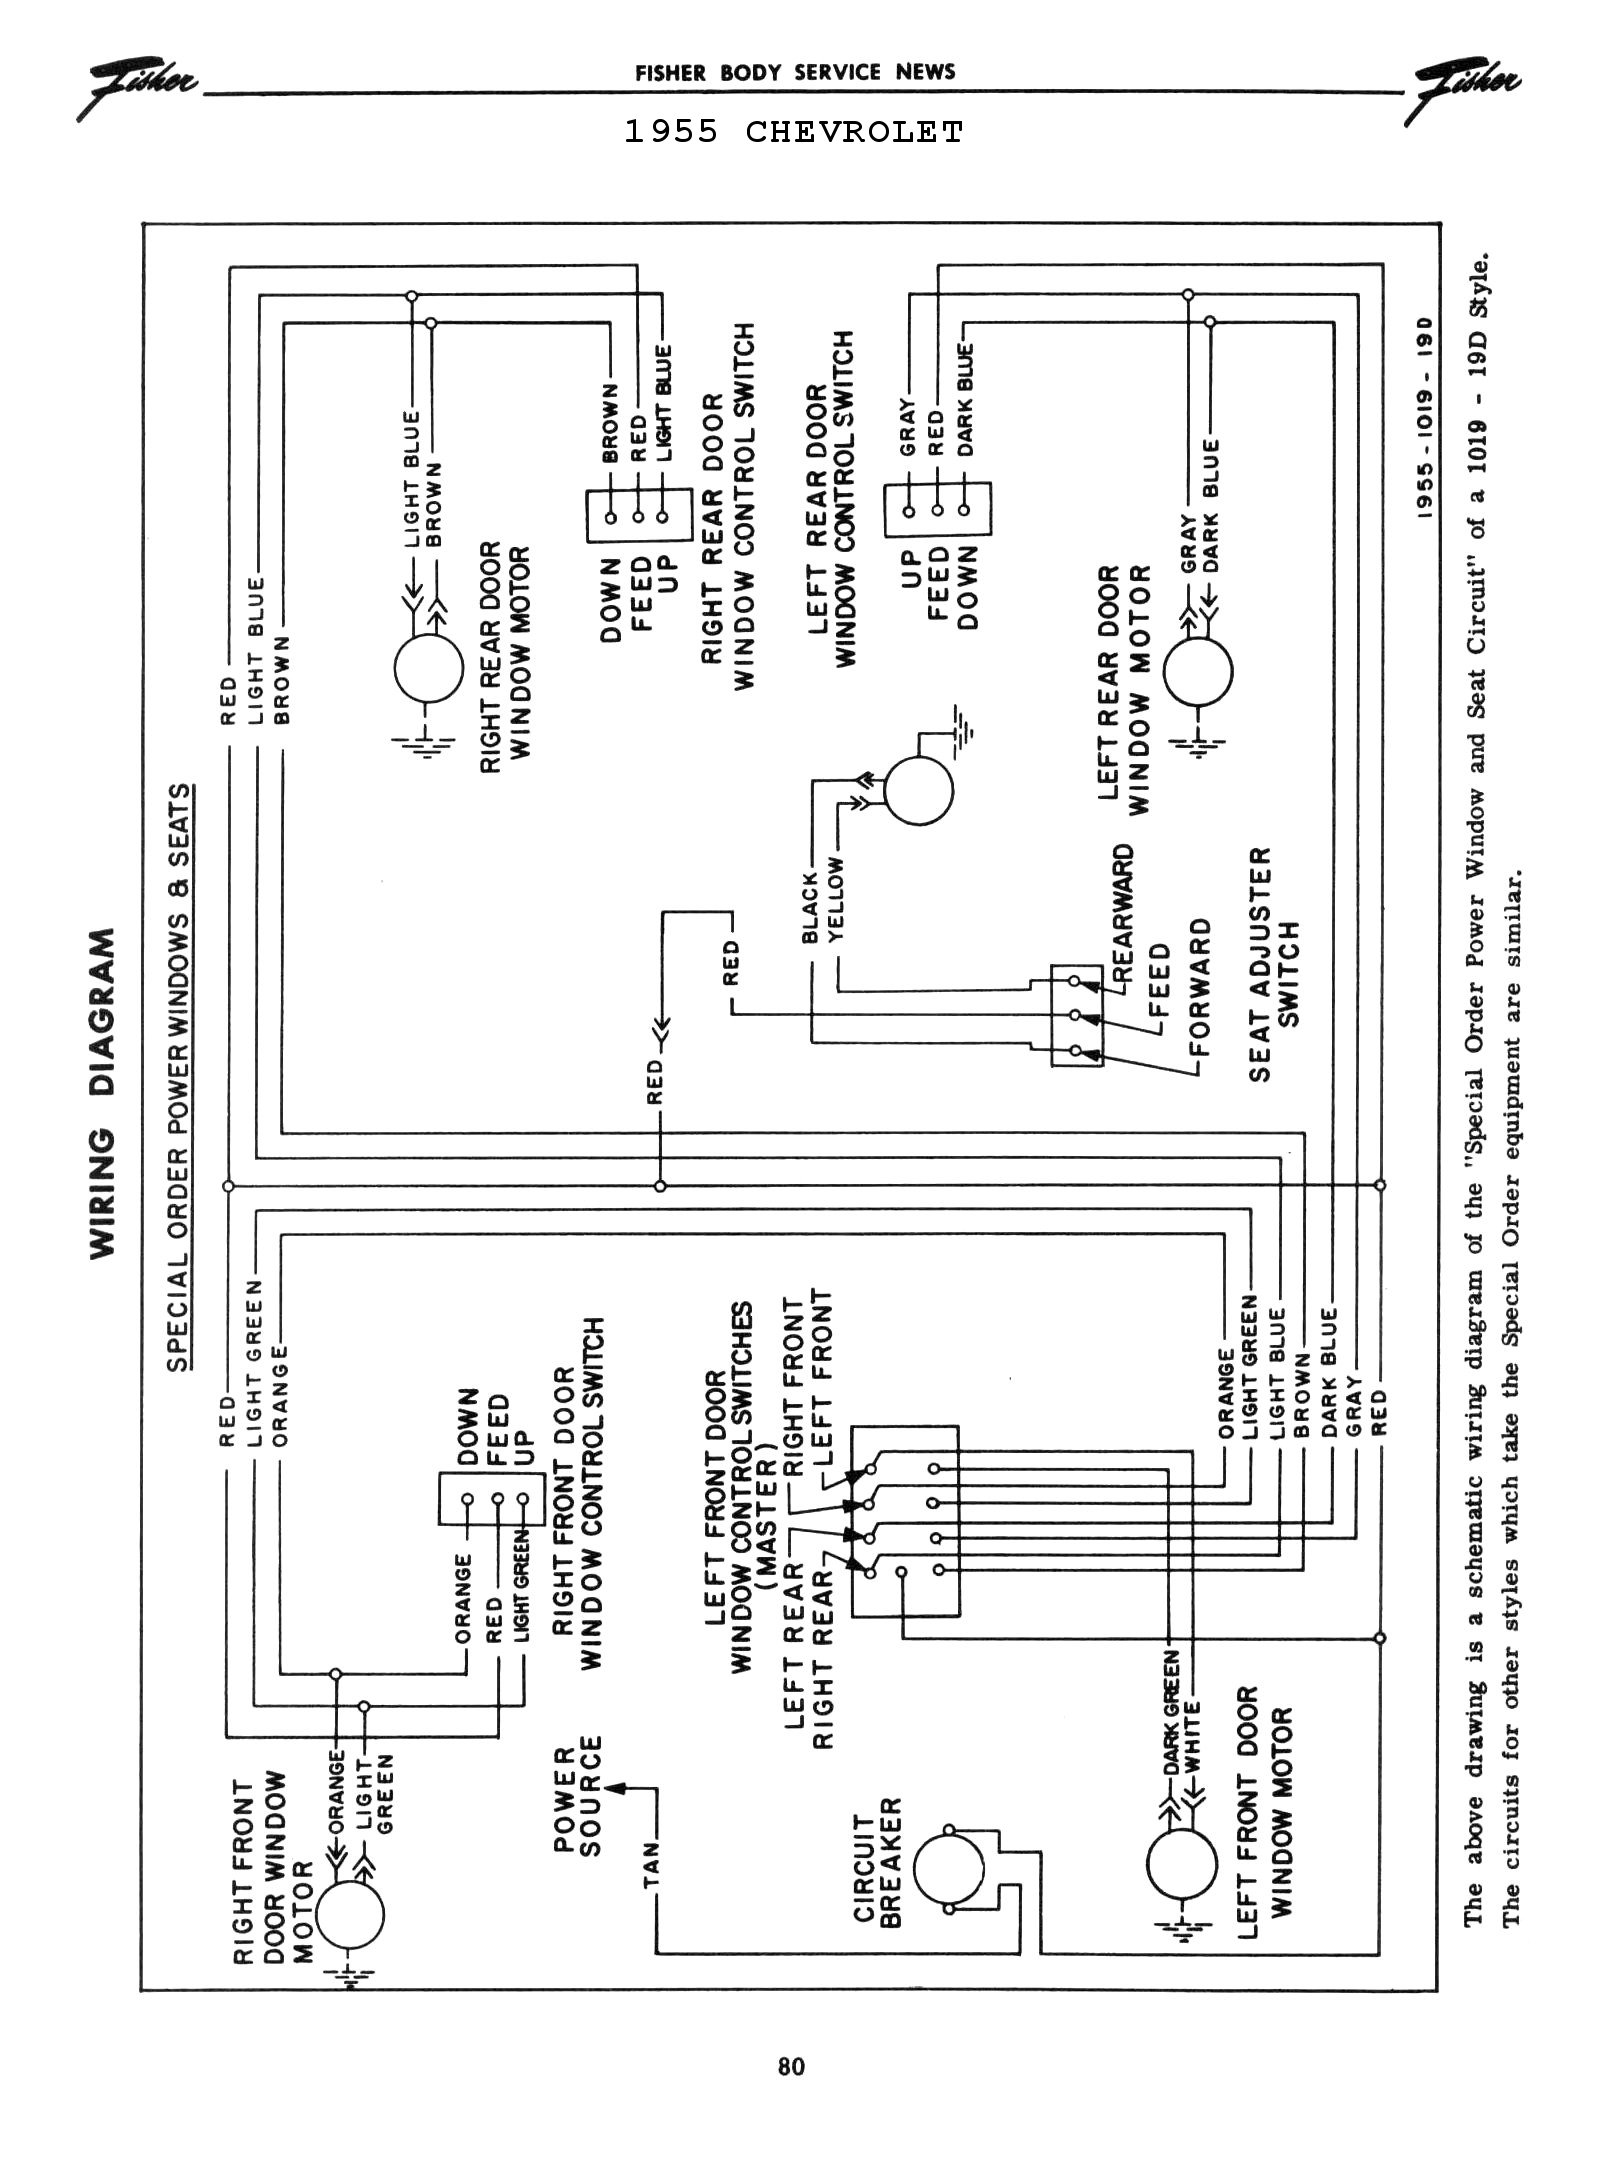 Fsn on 1957 chevrolet wiring diagram